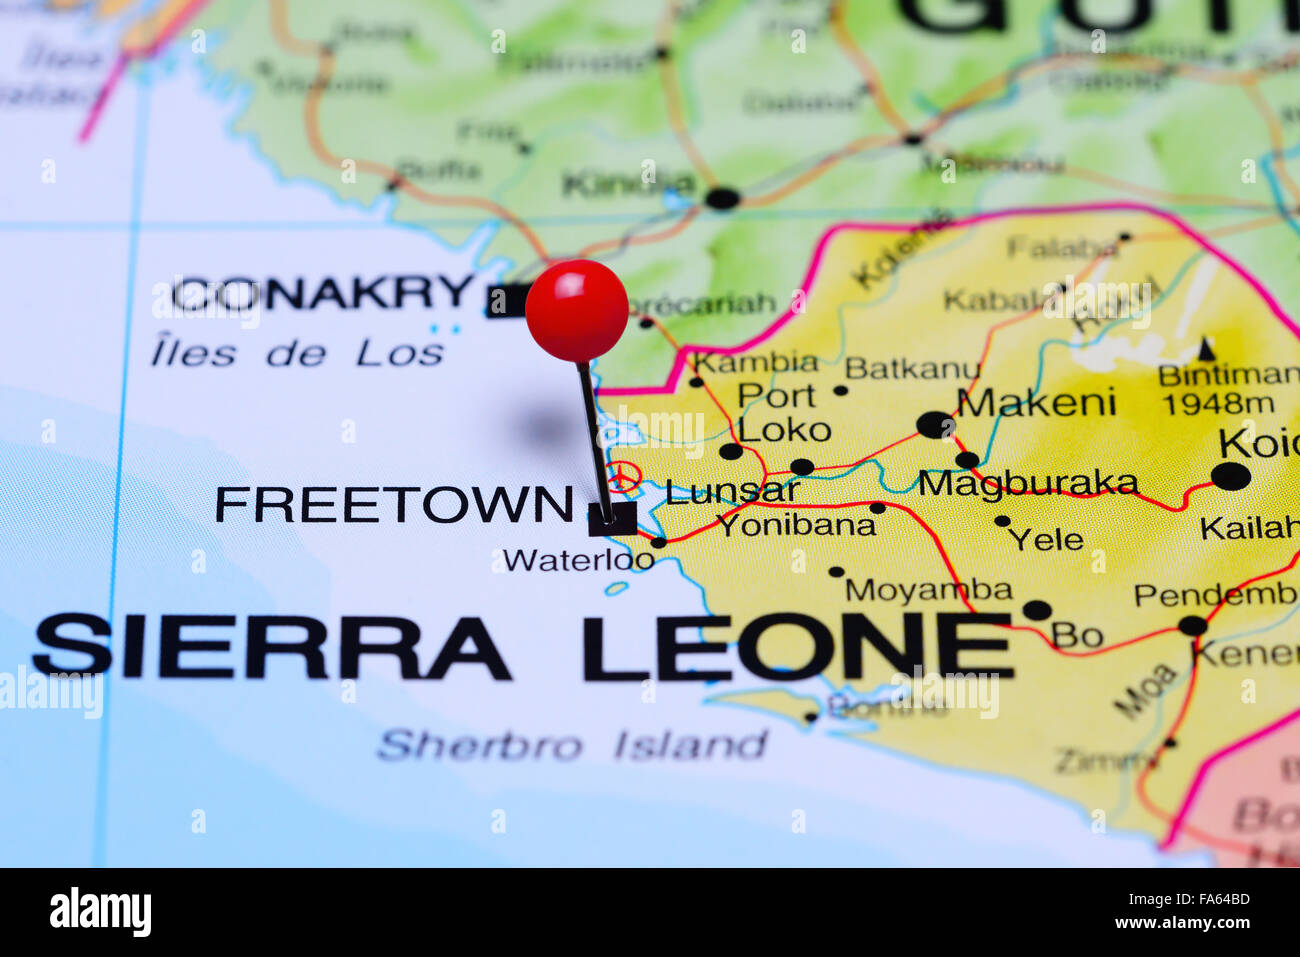 freetown africa map